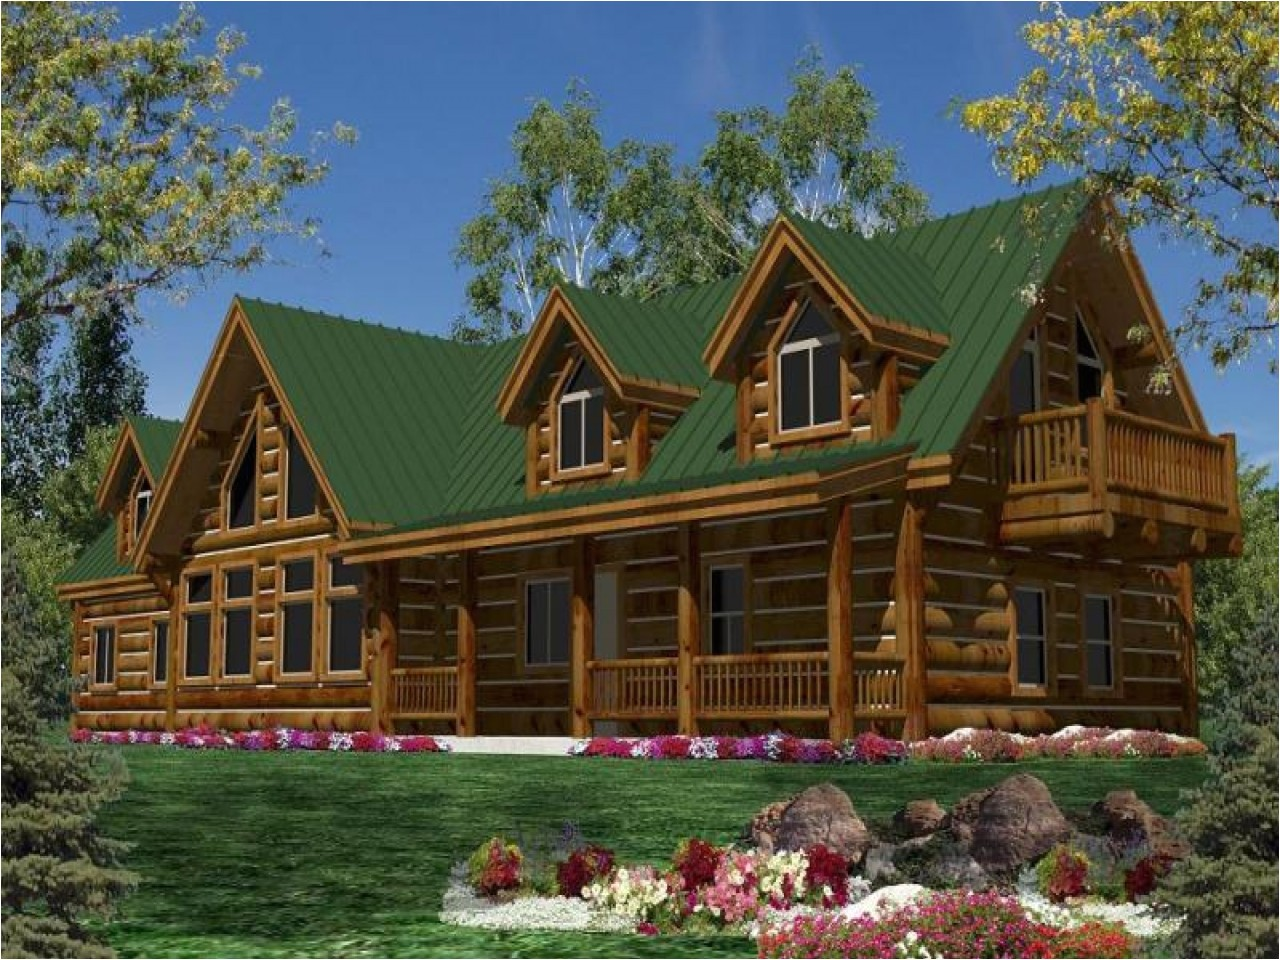 4587f742b45aee5a single story log cabin homes plans single story log cabin homes